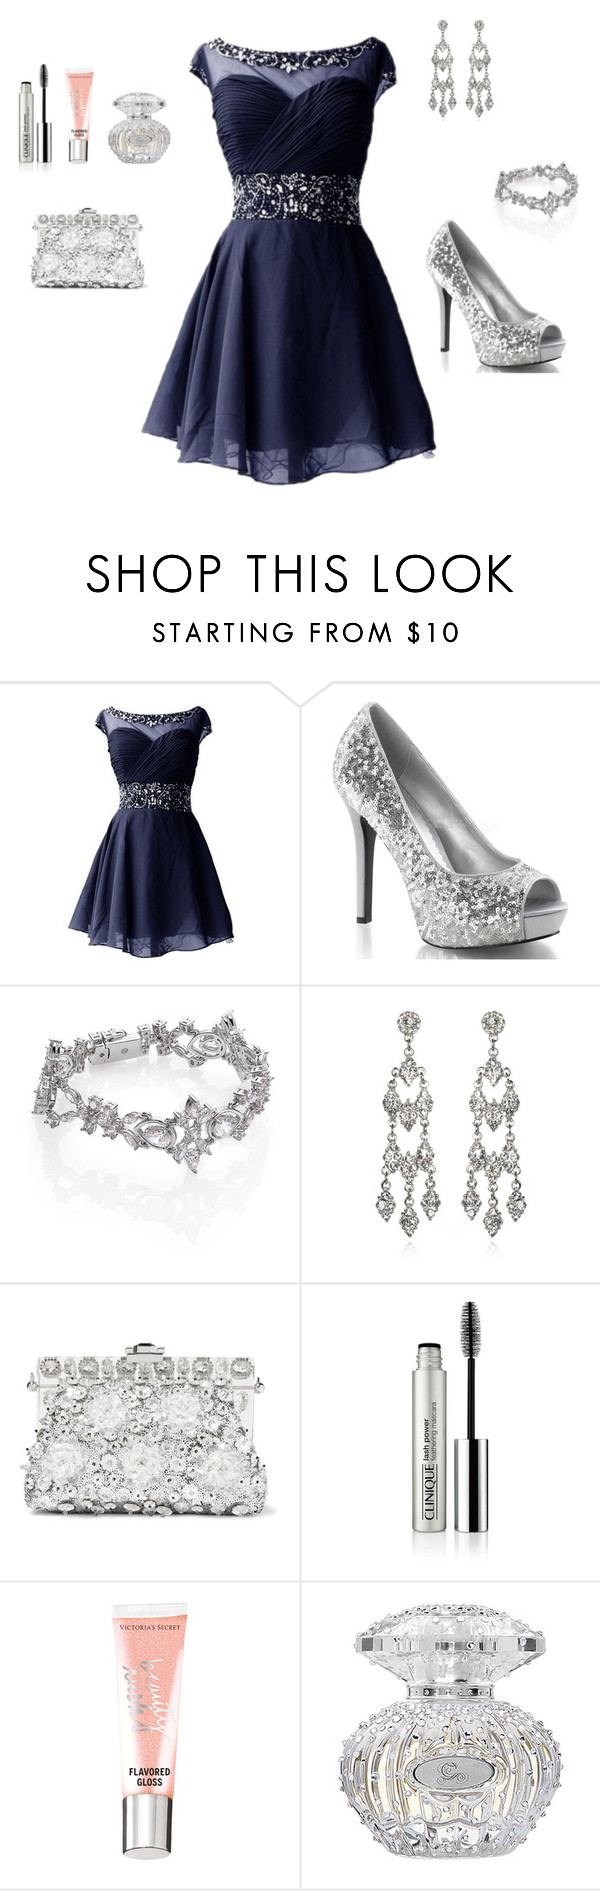 """Stars Can't Shine without Darkness"" by mckynleigh ❤ liked on Polyvore featuring Adriana Orsini, Kenneth Jay Lane, Dolce&Gabbana, Clinique and Beauty Rush"